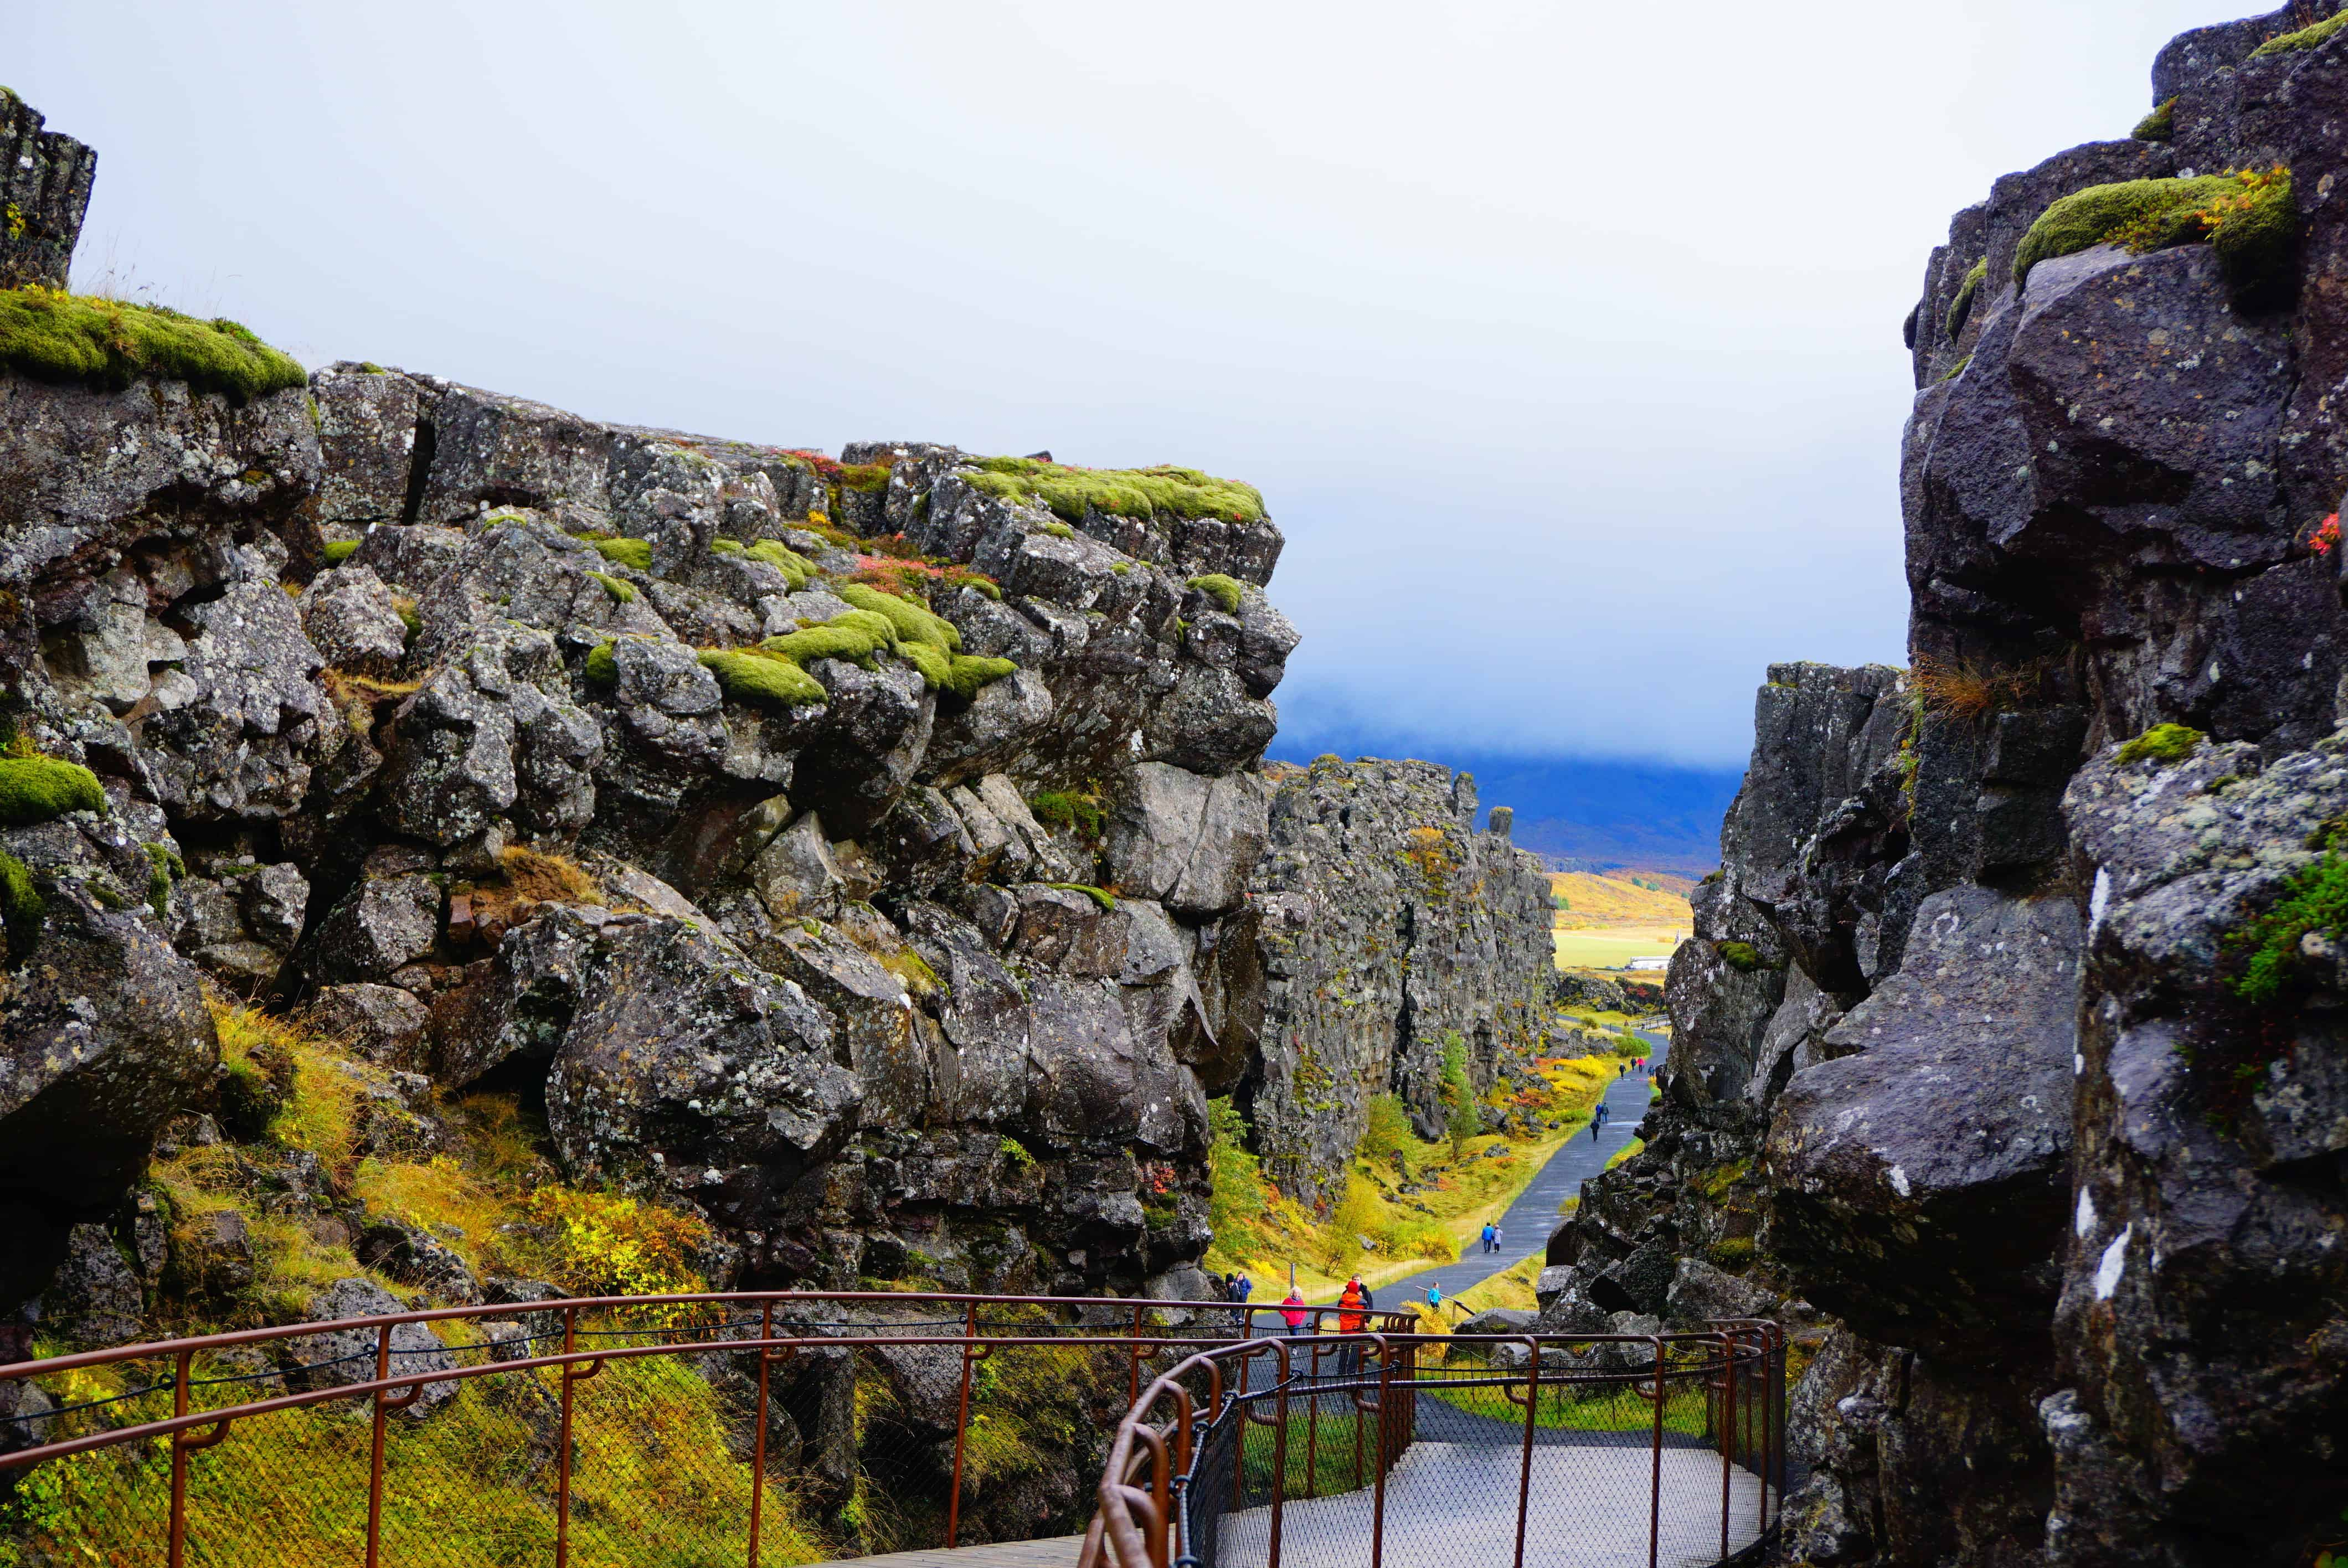 Path Through Rocky Walls In Thingvellir National Park on Iceland's Golden Circle